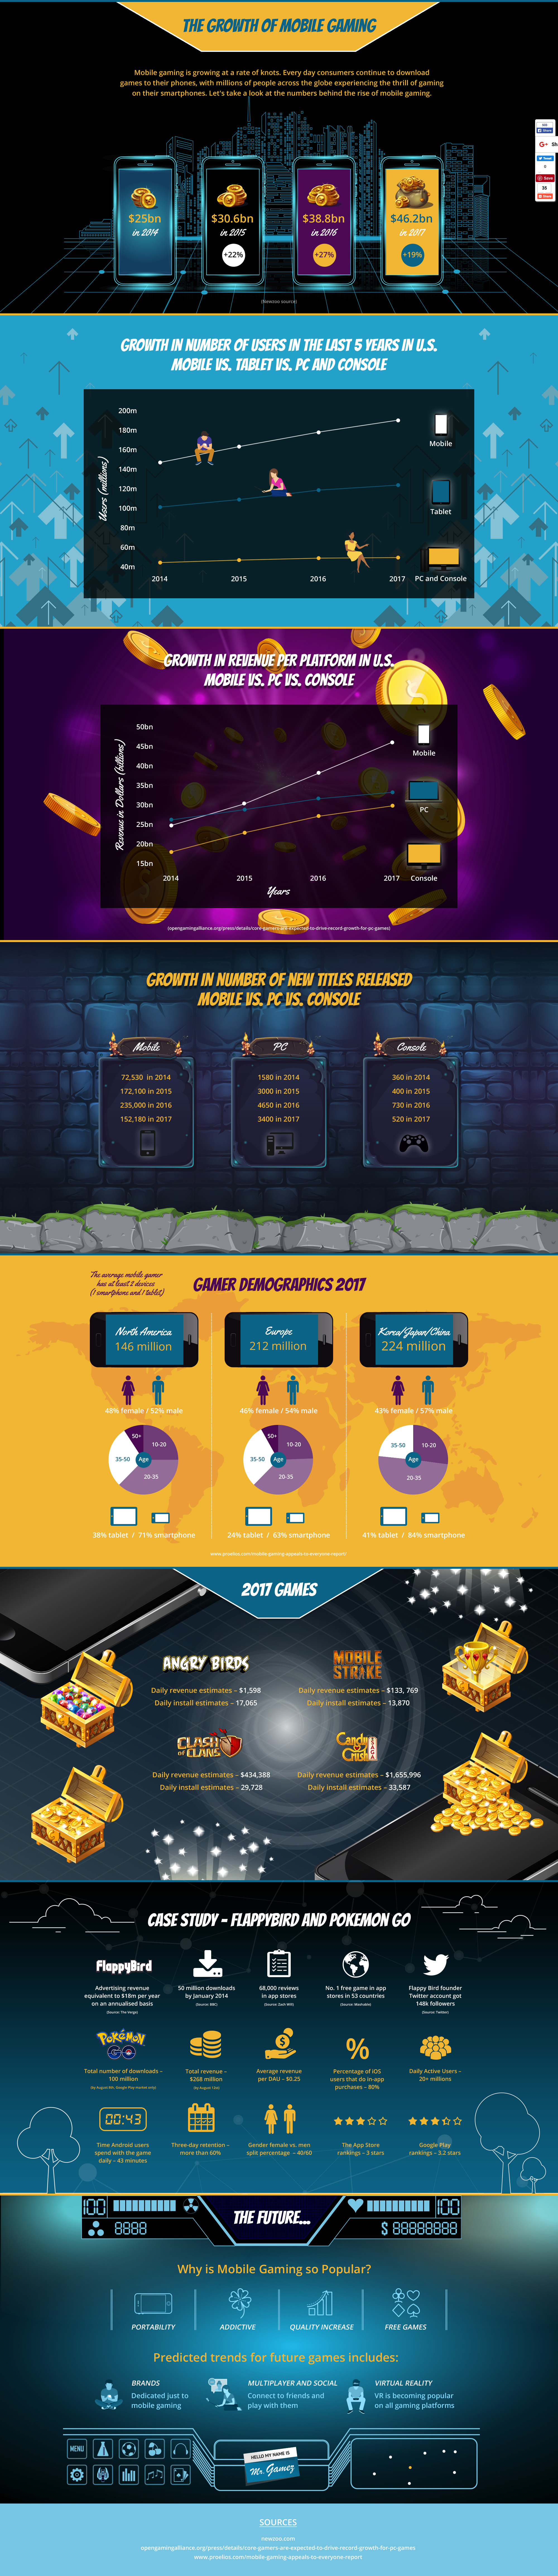 Growth Of Mobile Gaming [Infographic]